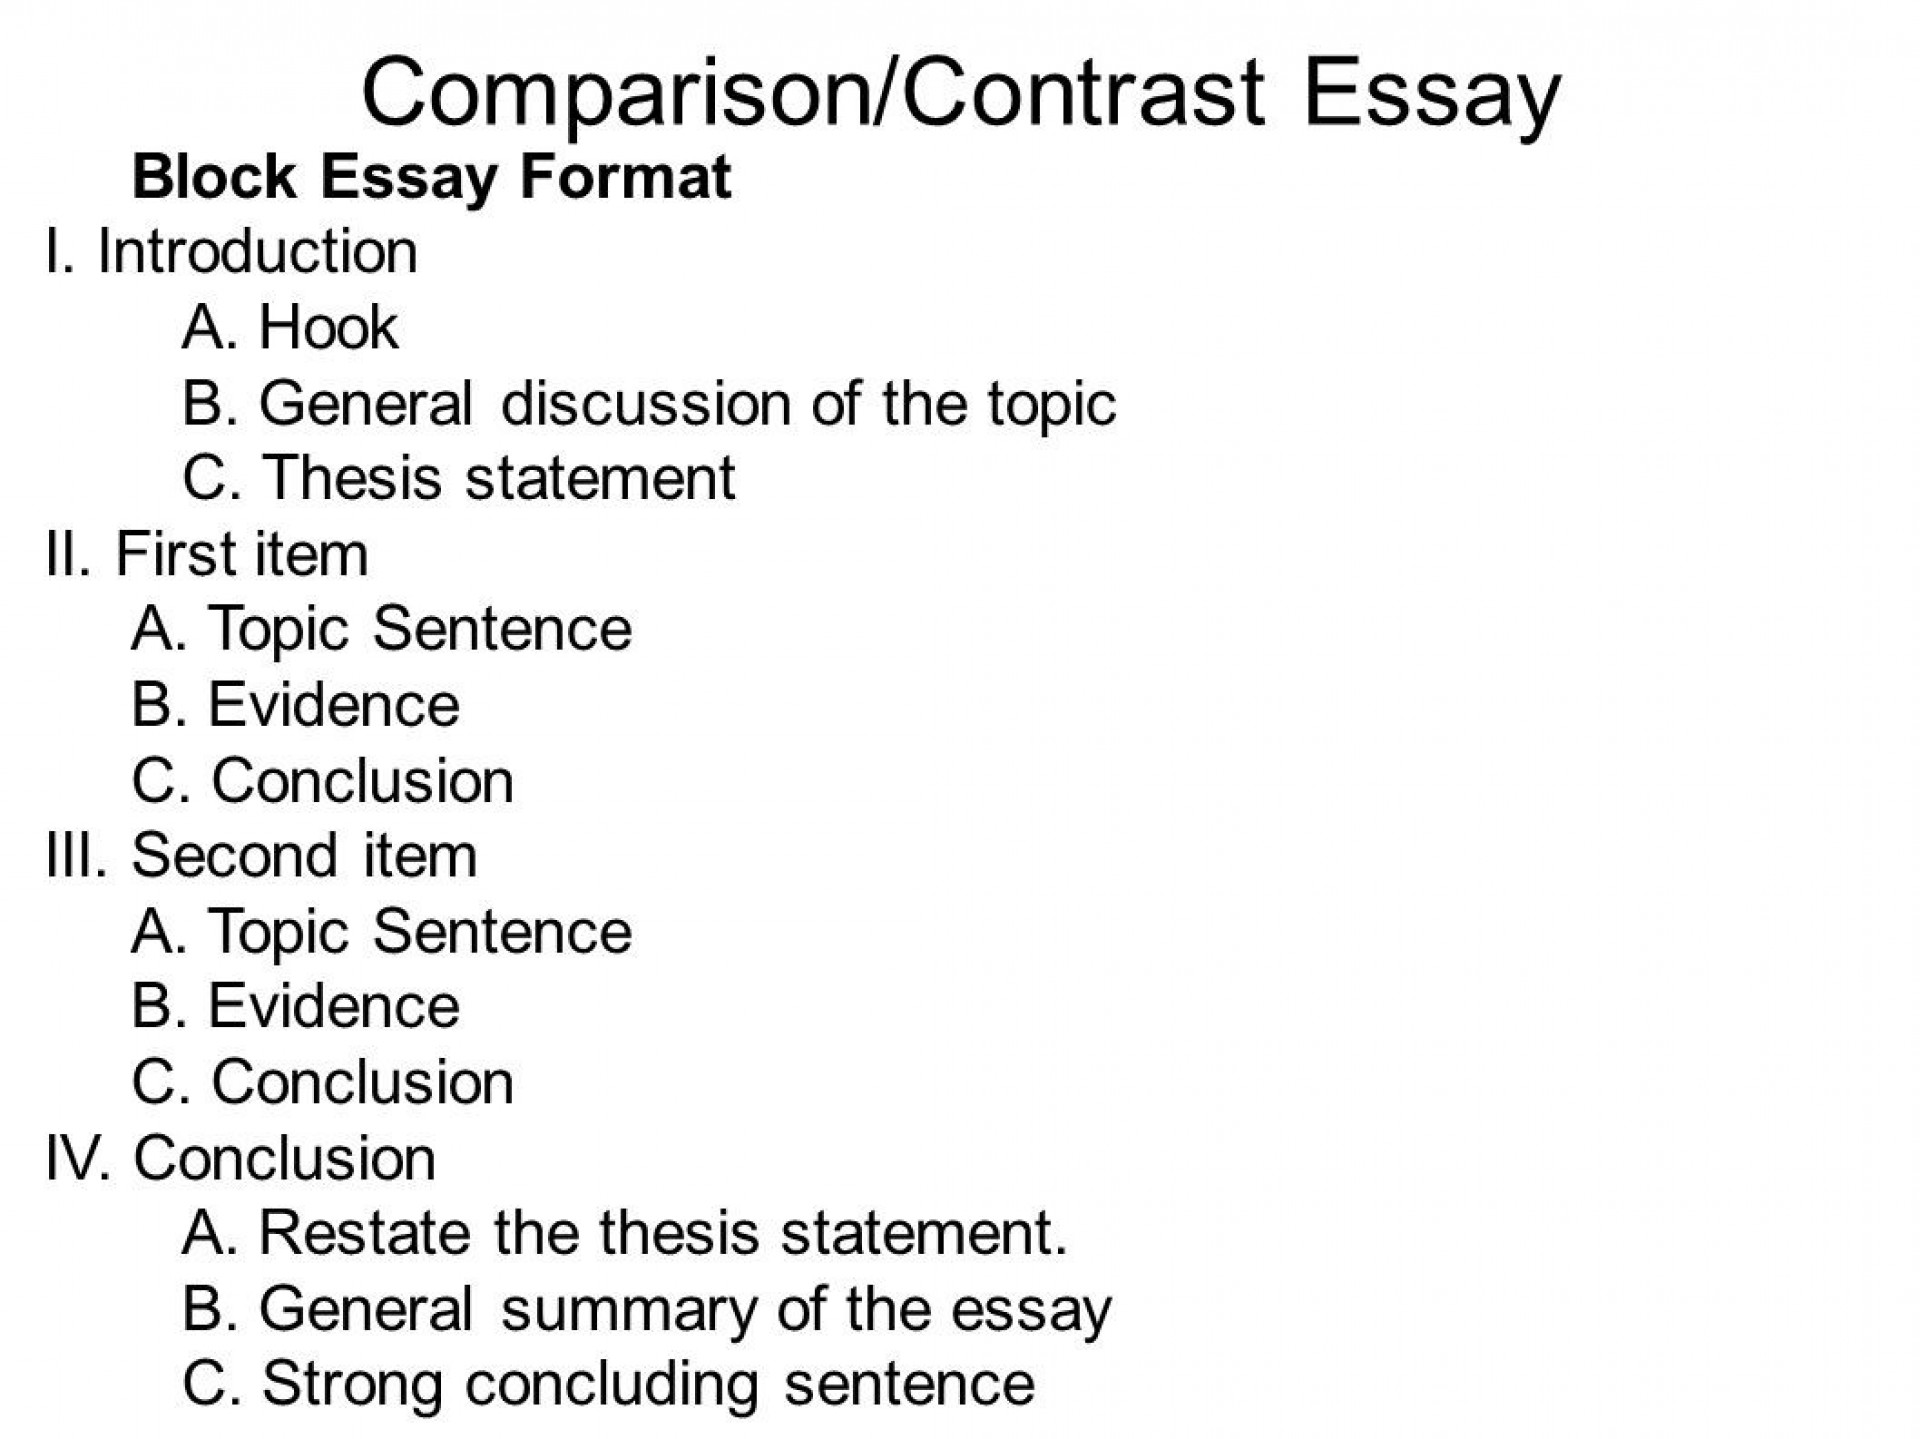 019 example comparison and contrast essay writing college homework